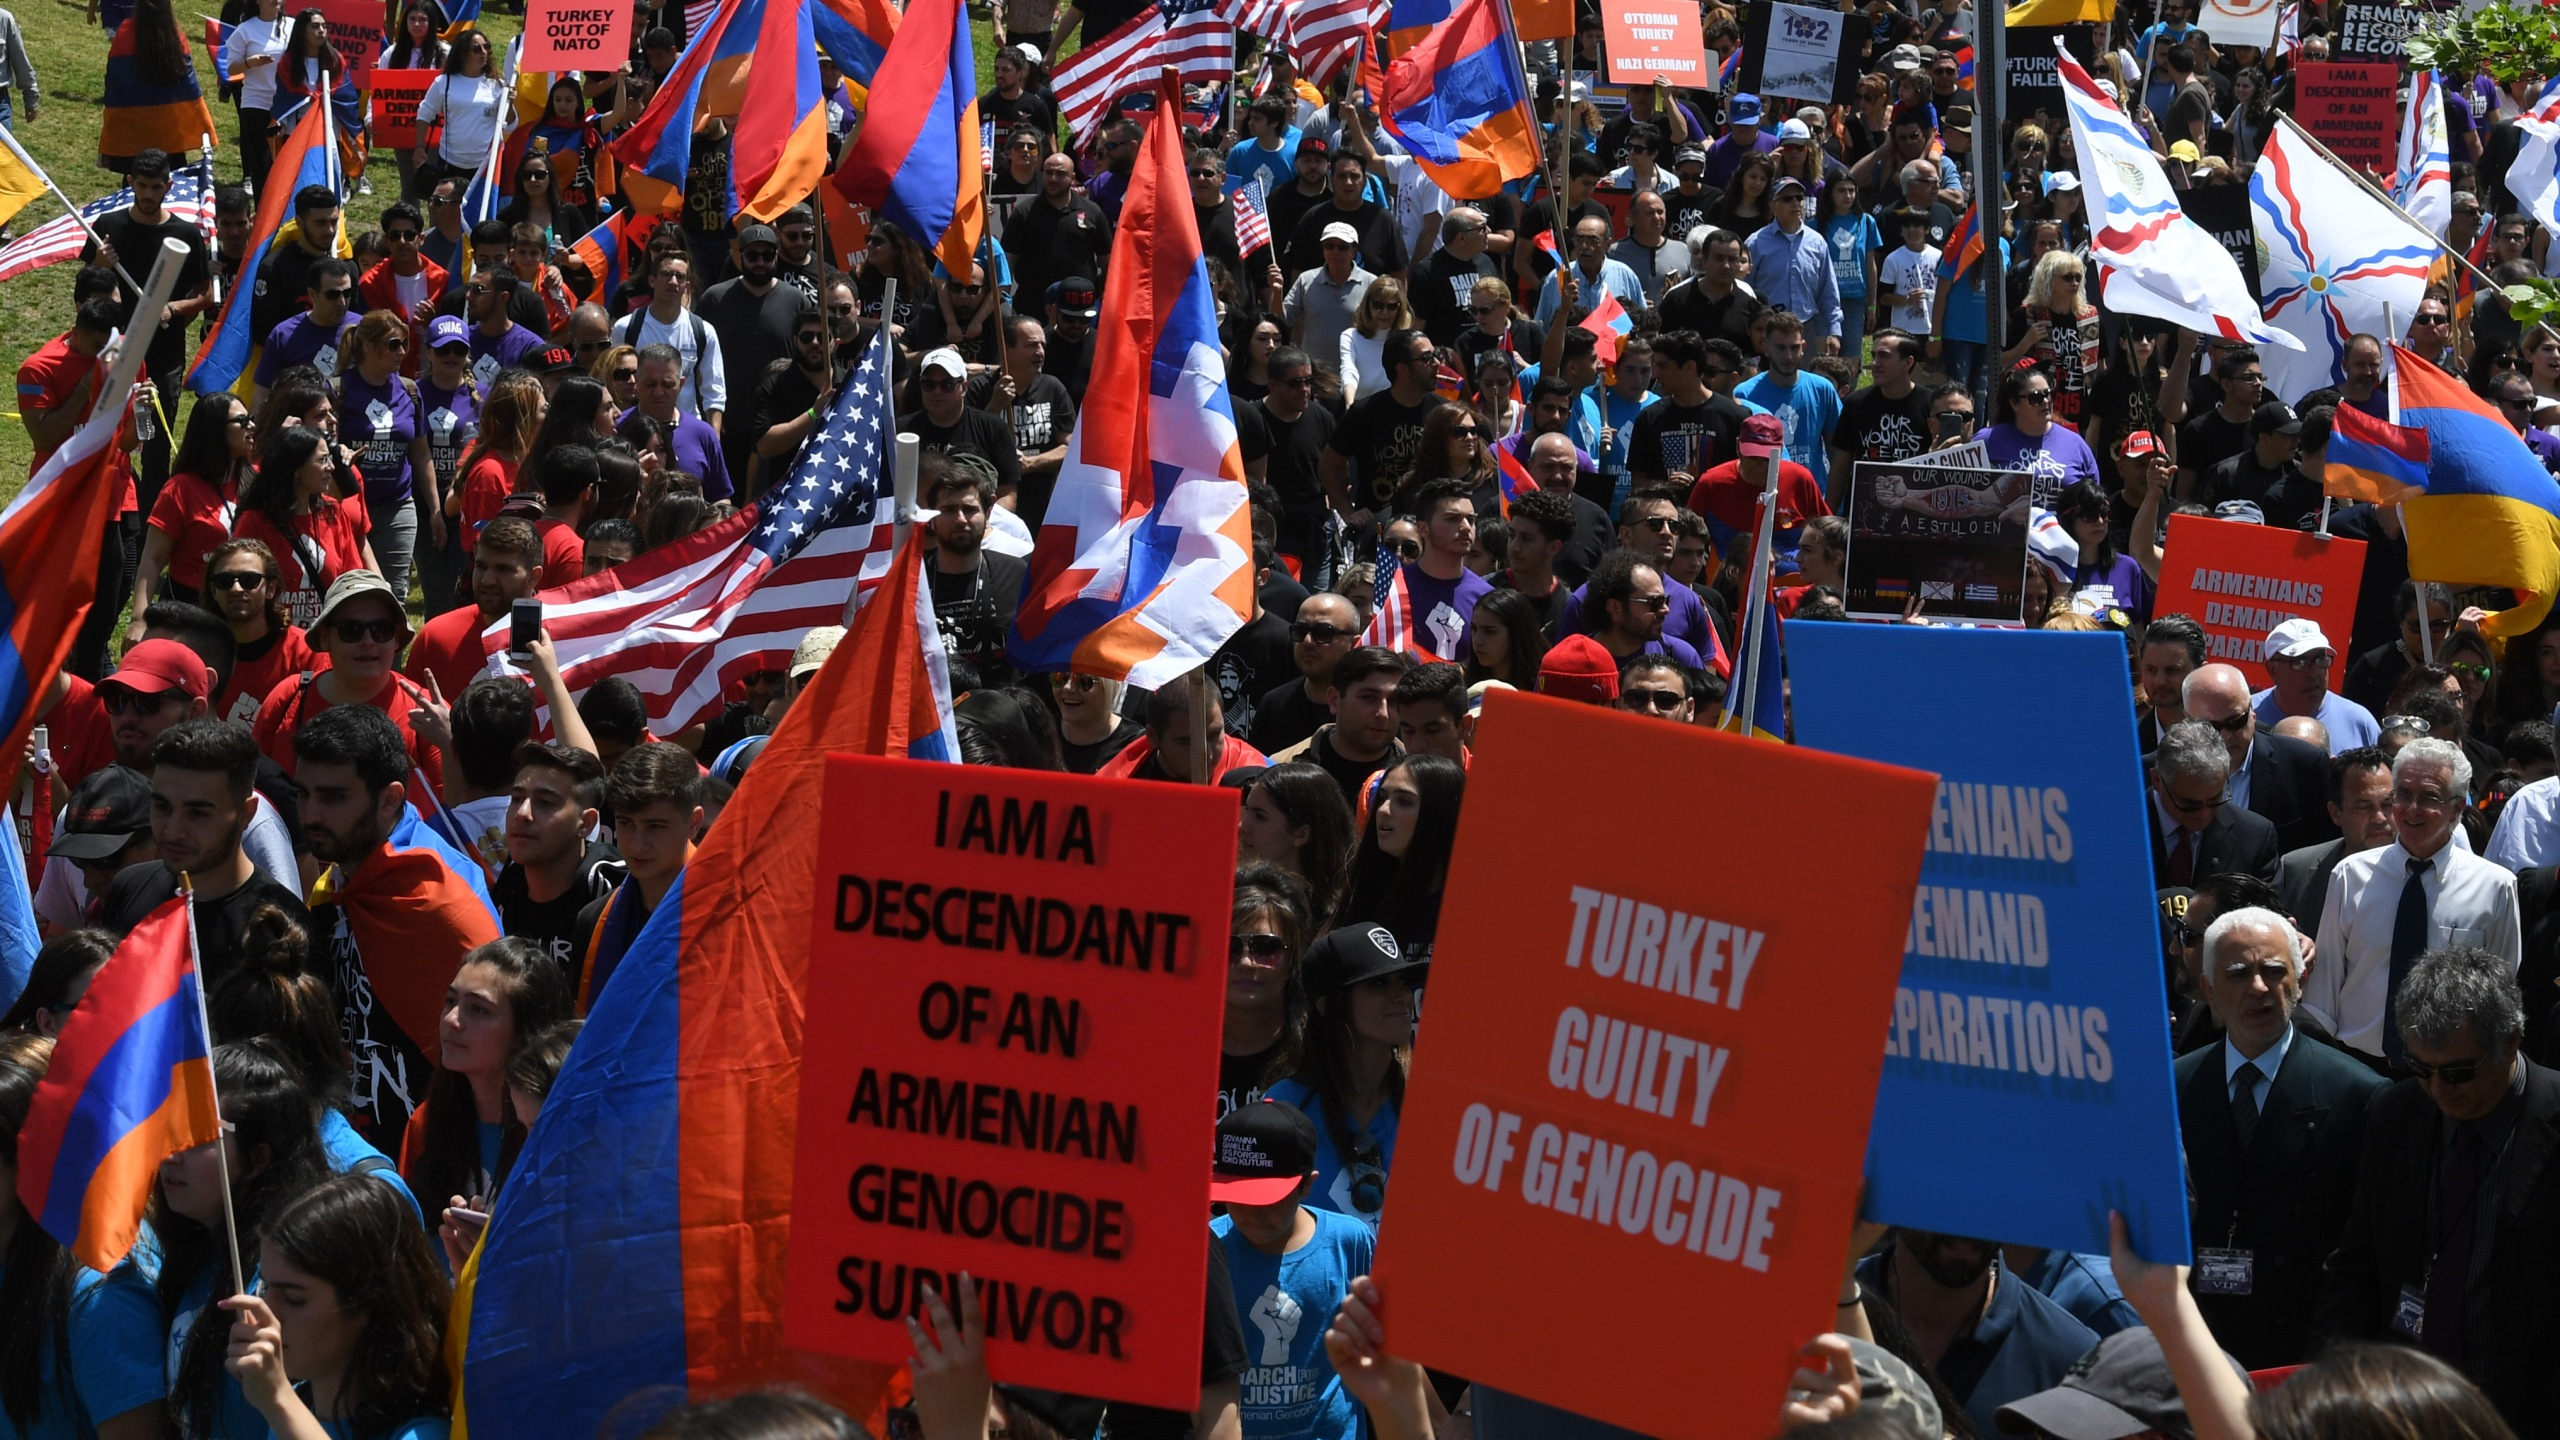 Thousands of members of the Armenian community march towards the Turkish Consulate on April 24, 2017, in Los Angeles, marking the 102nd anniversary of the Armenian genocide. (Credit: Mark Ralston/AFP/Getty Images)